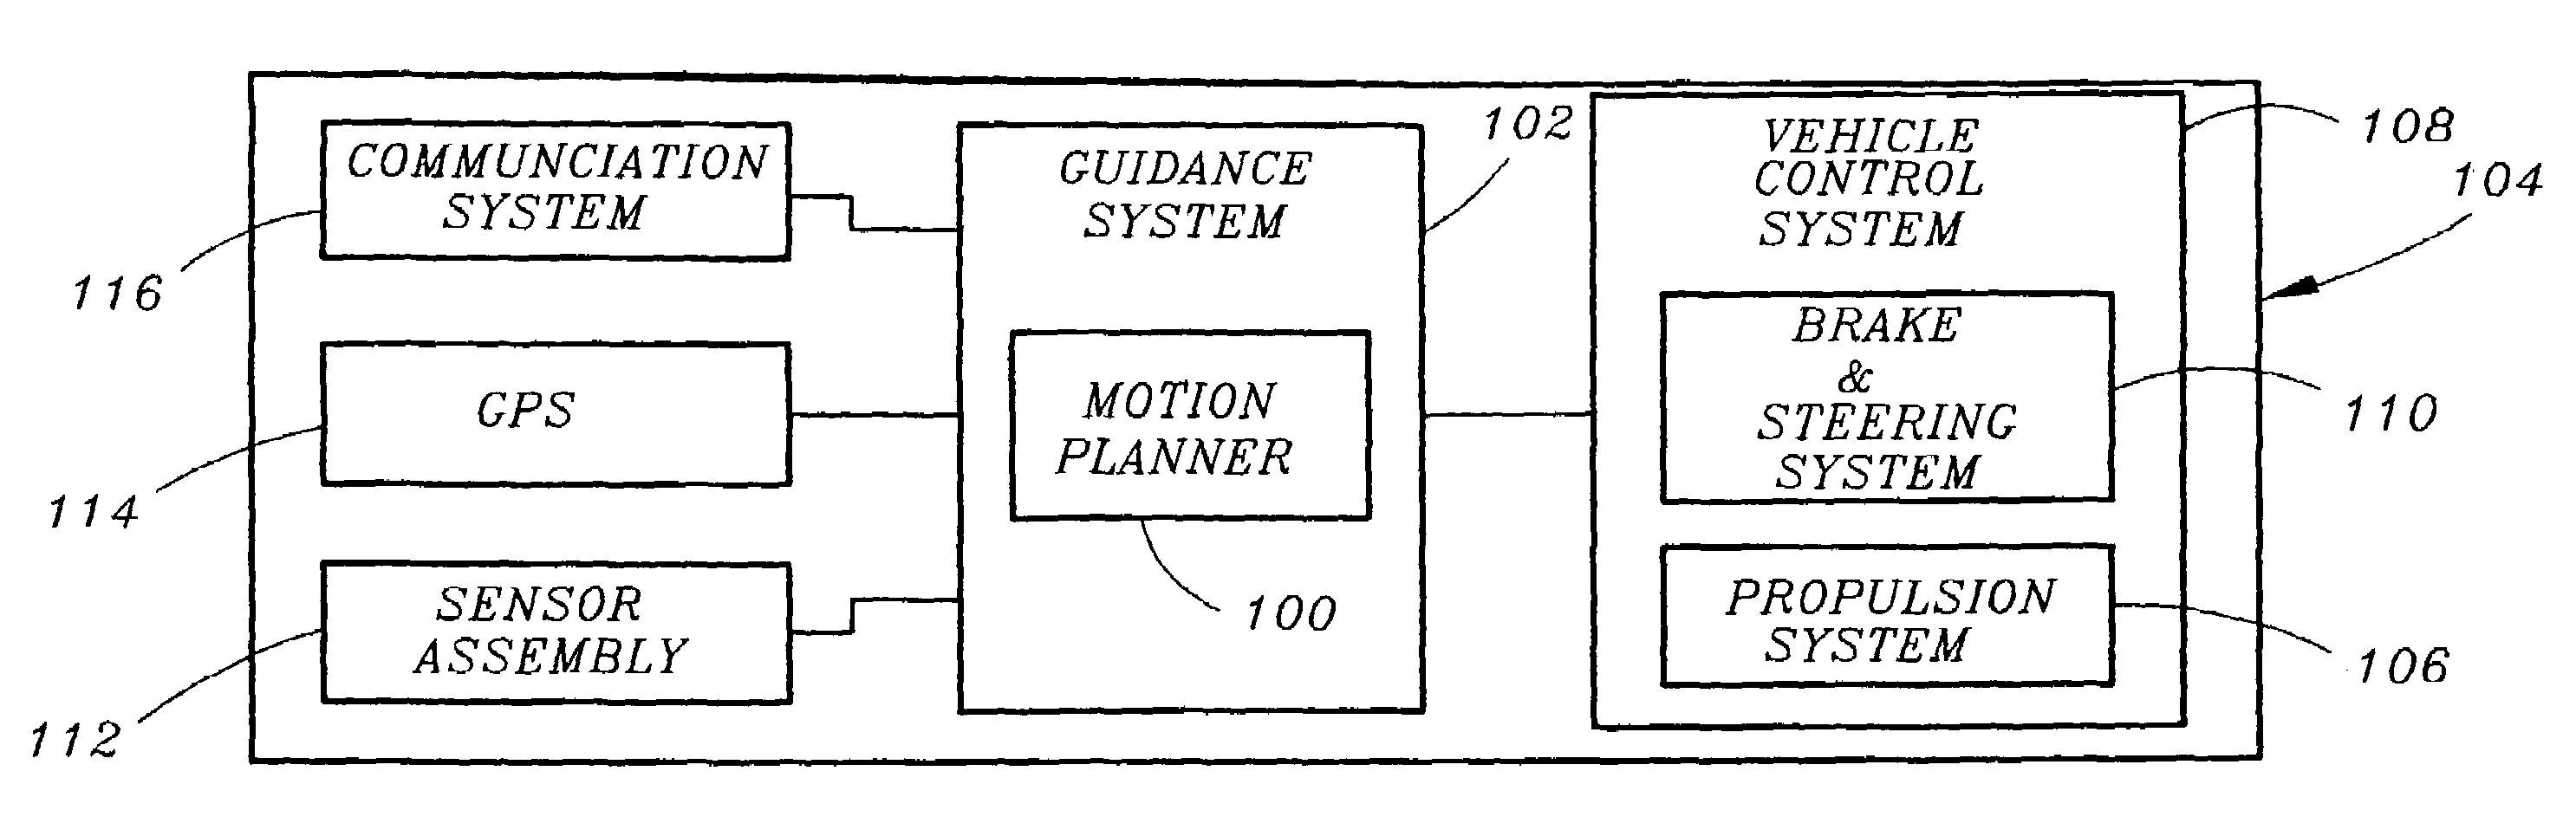 Patent US7734387 - Motion planner for unmanned ground vehicles